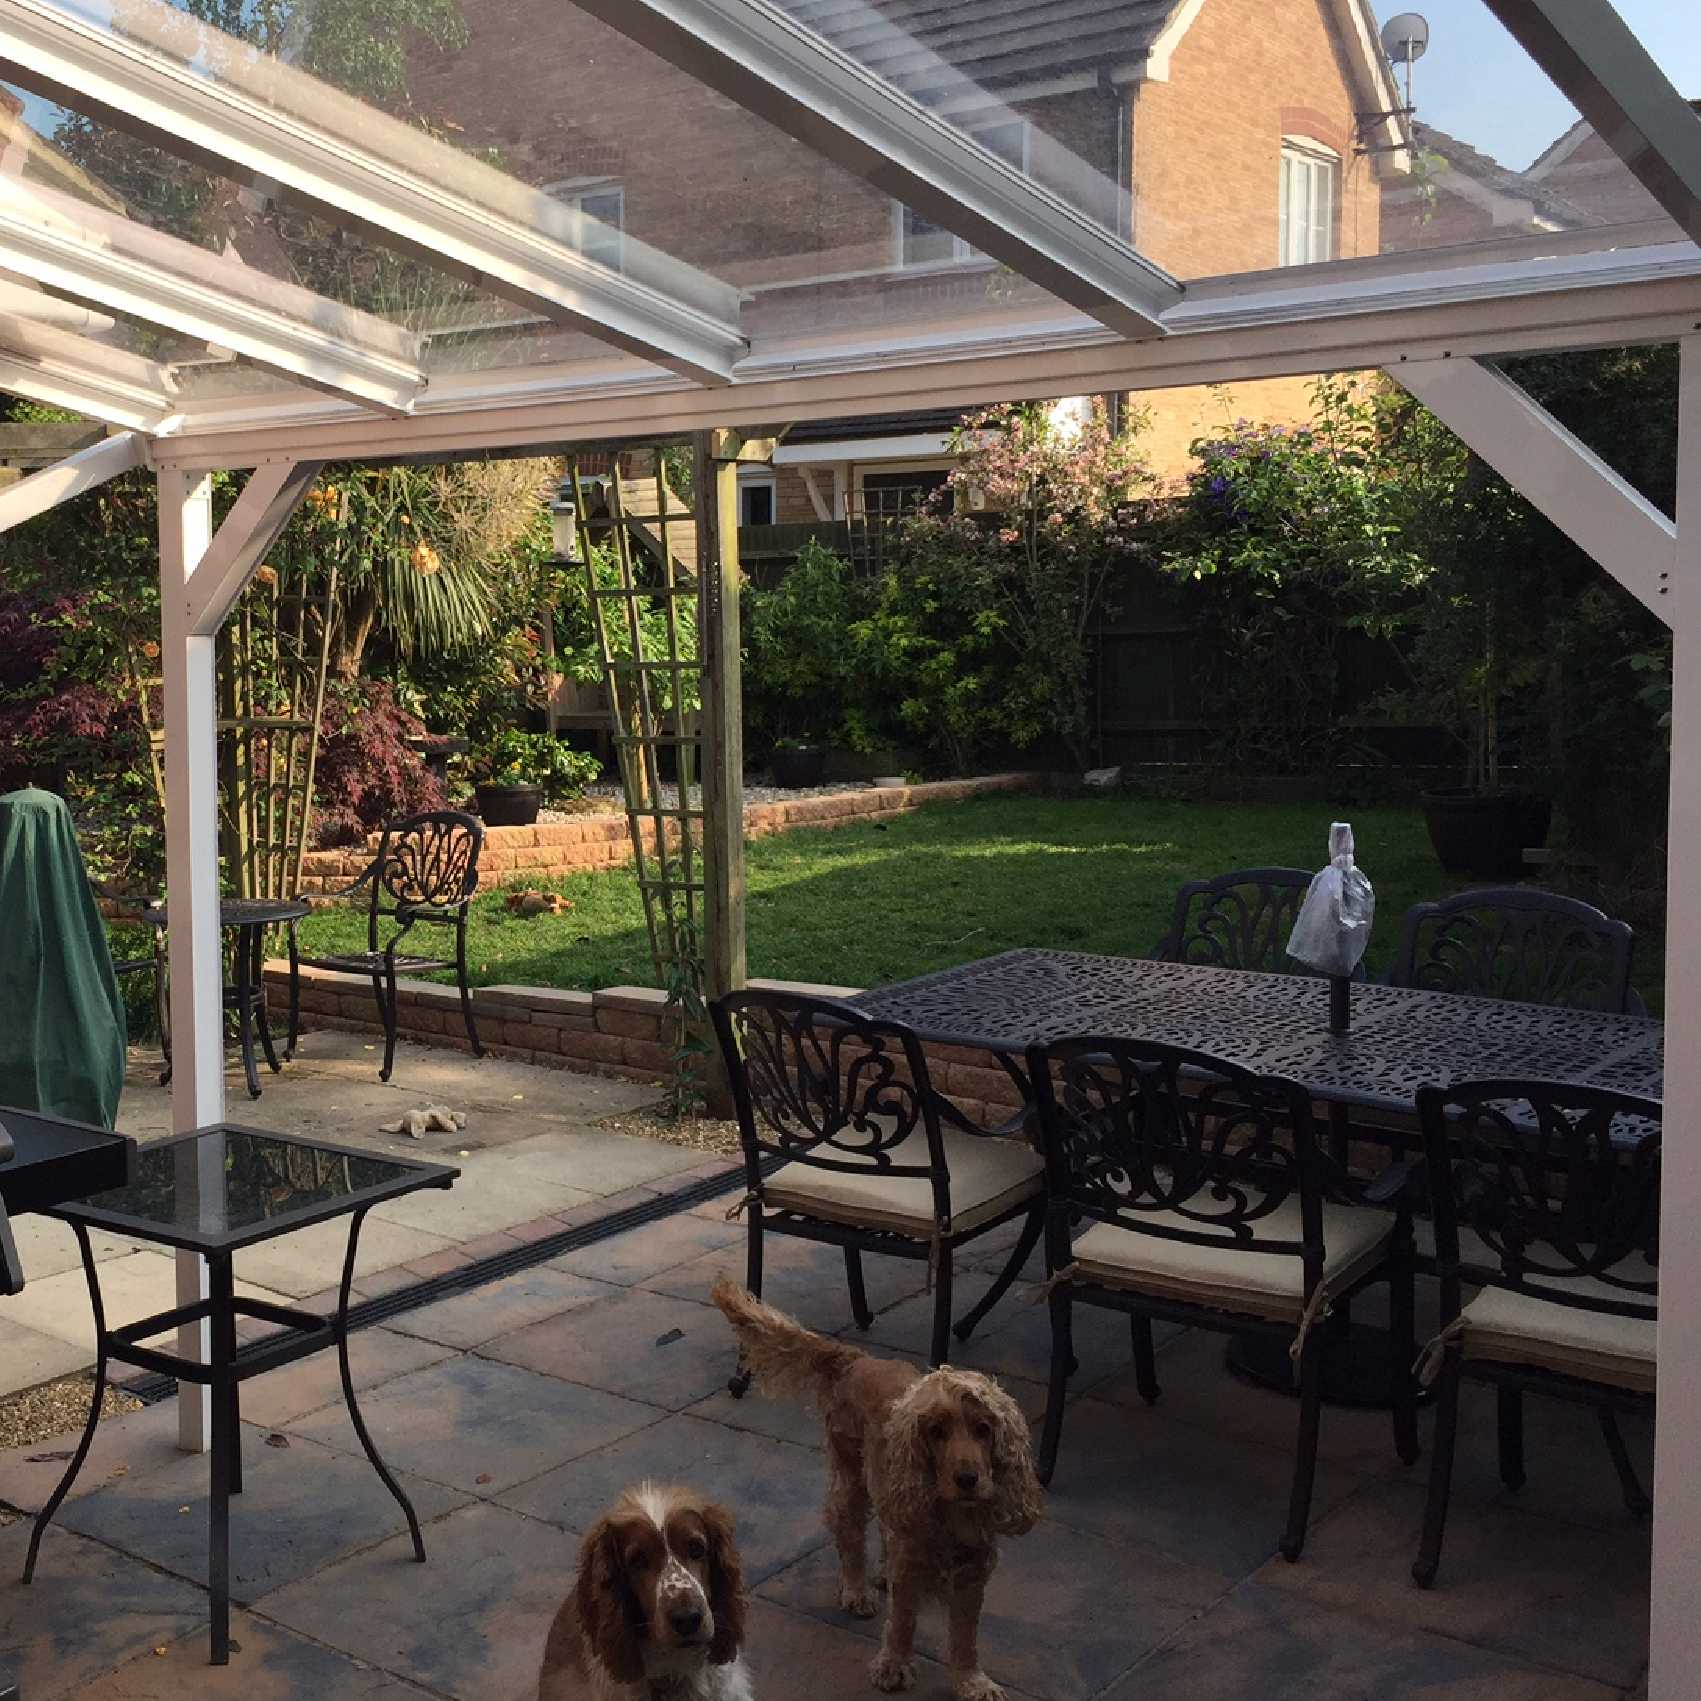 Affordable Omega Smart White Lean-To Canopy with 6mm Glass Clear Plate Polycarbonate Glazing - 2.1m (W) x 2.0m (P), (2) Supporting Posts